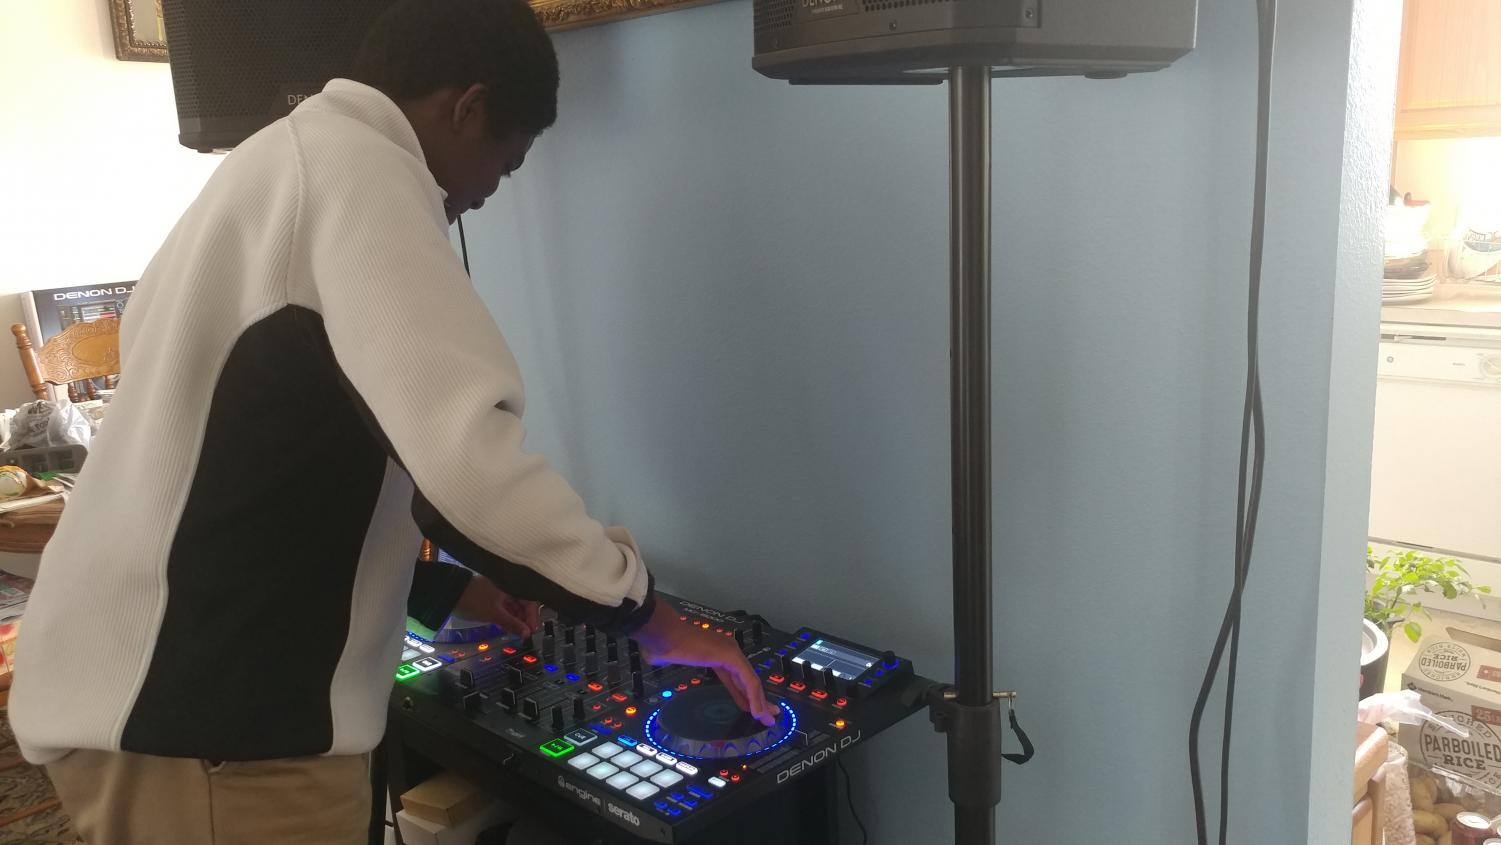 Sophomore Jordan Bakar playing his DJ board for practice before upcoming gigs. Bakar learned to play with family and friends, and created his own YouTube Channel